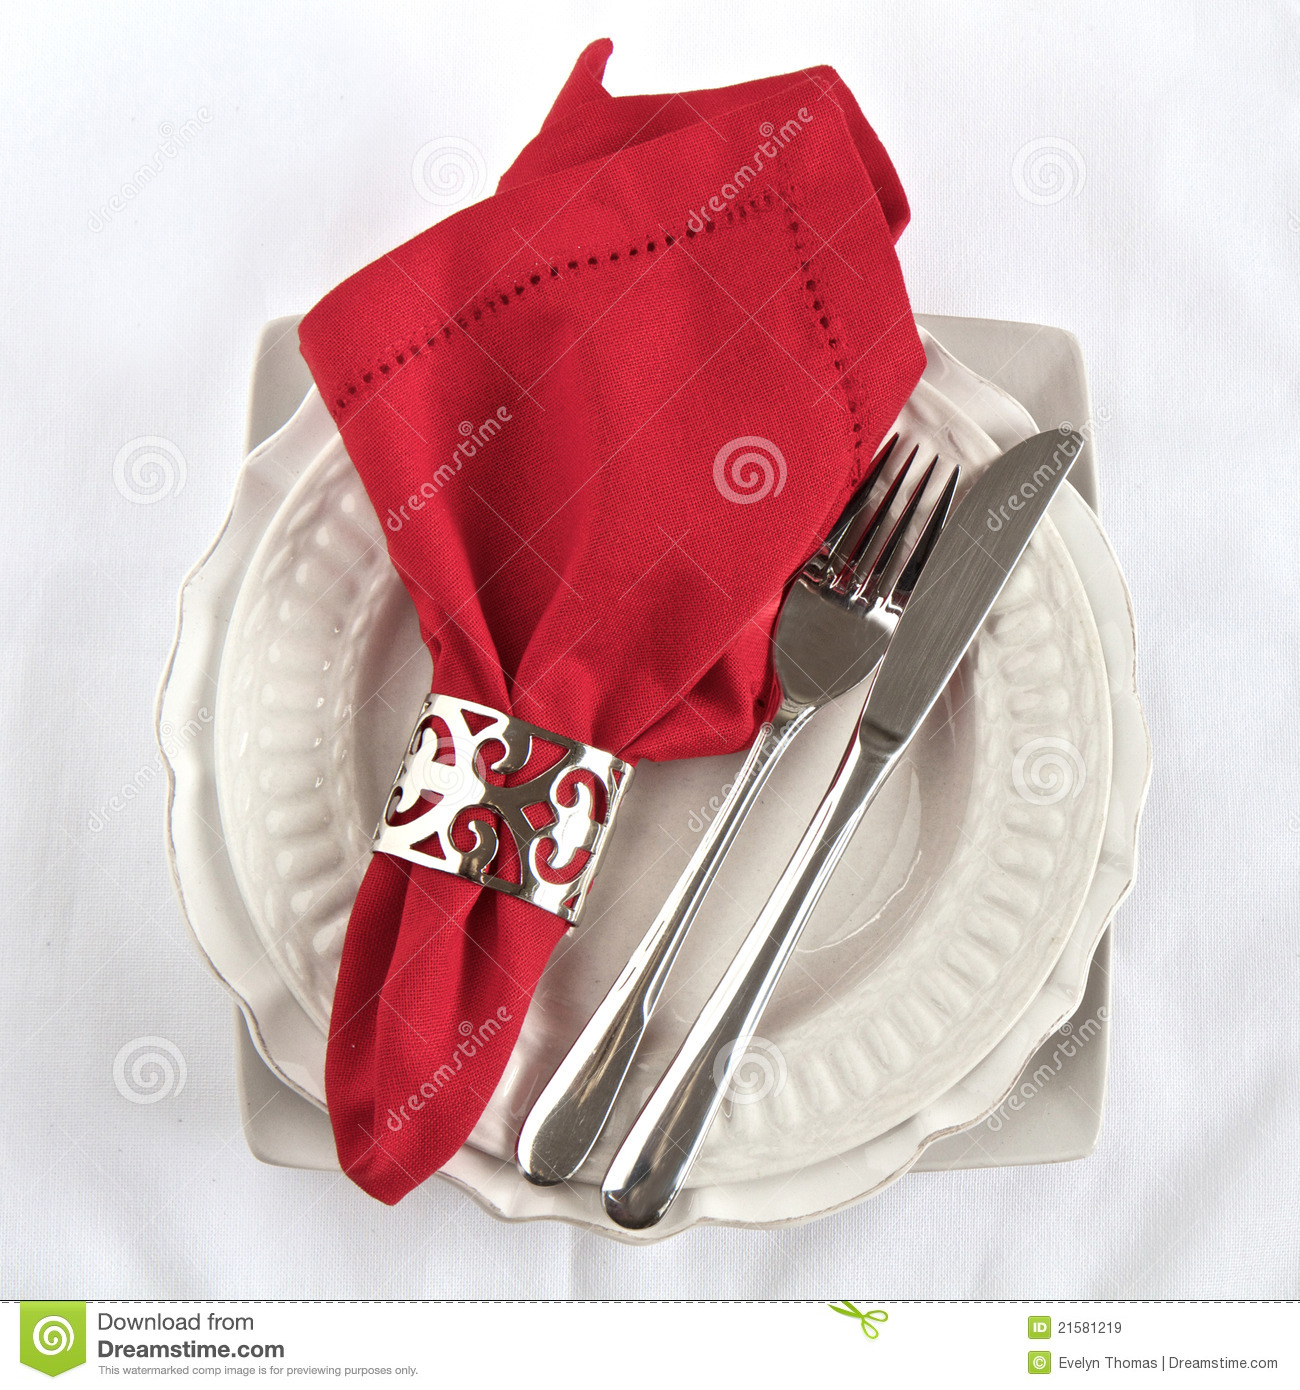 SIlverware As A Table Setting With Red Napkin Royalty Free  : silverware as table setting red napkin 21581219 from dreamstime.com size 1300 x 1390 jpeg 596kB